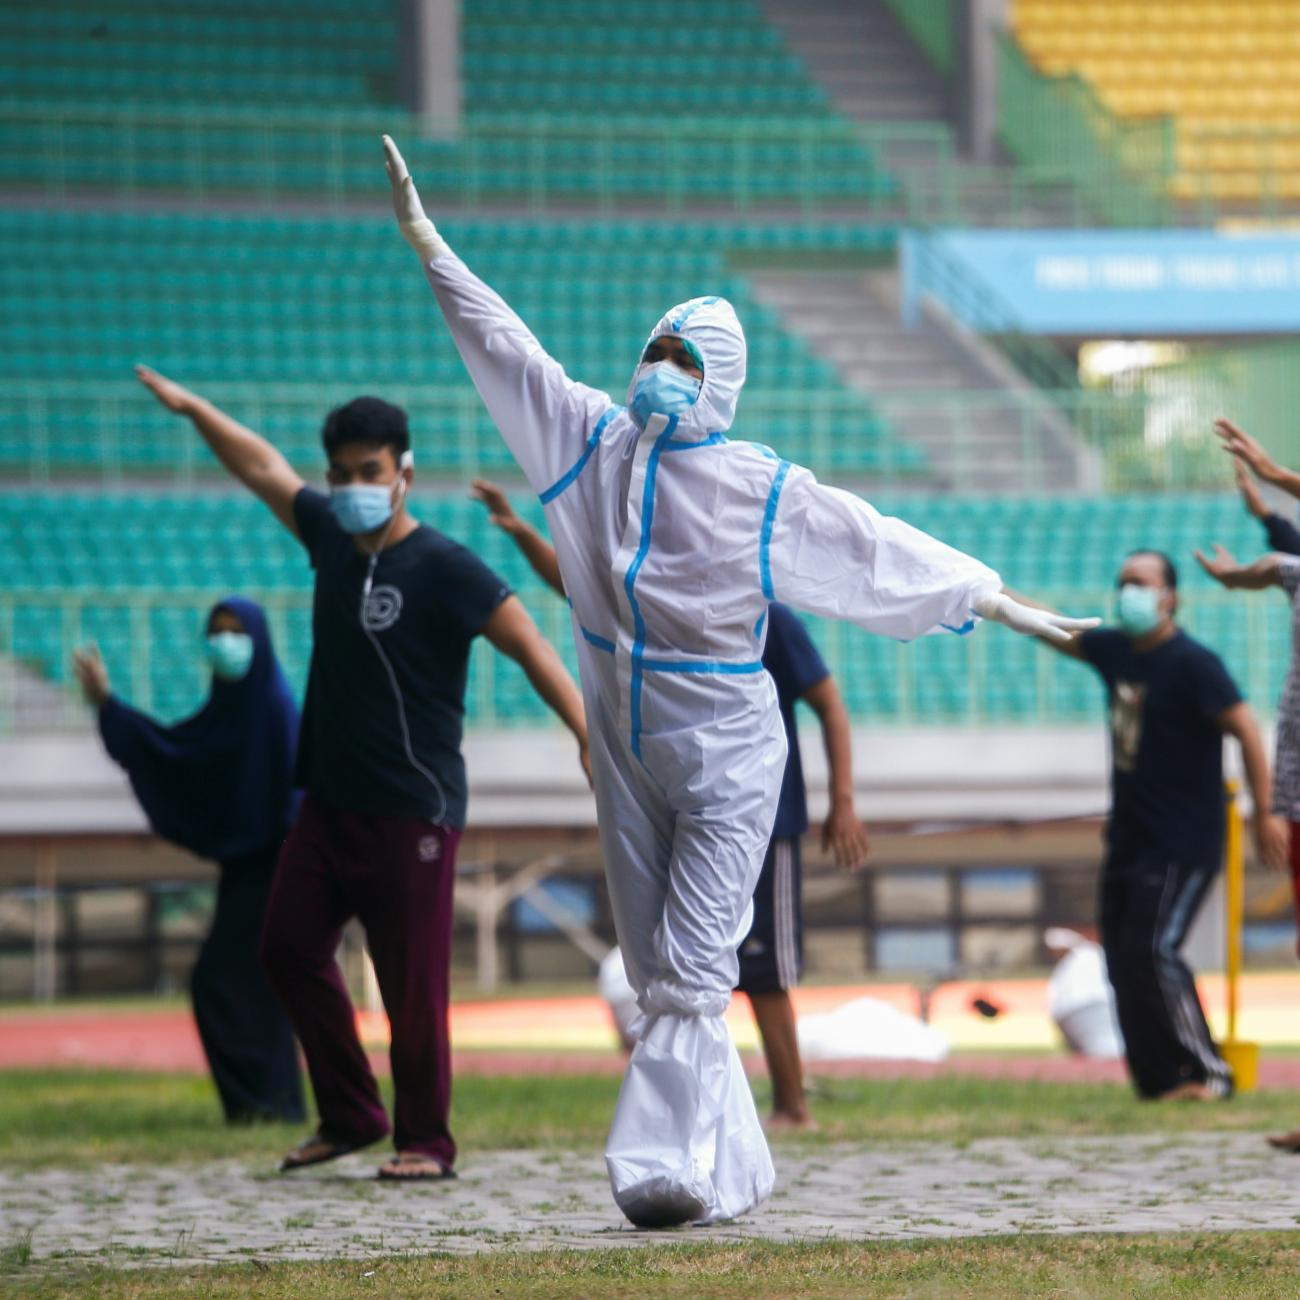 A health worker wearing protective suit and patients exercise at the Patriot Chandrabhaga Stadium which has been converted into a quarantine house amid the coronavirus disease (COVID-19) outbreak, in Bekasi, on the outskirts of Jakarta, Indonesia